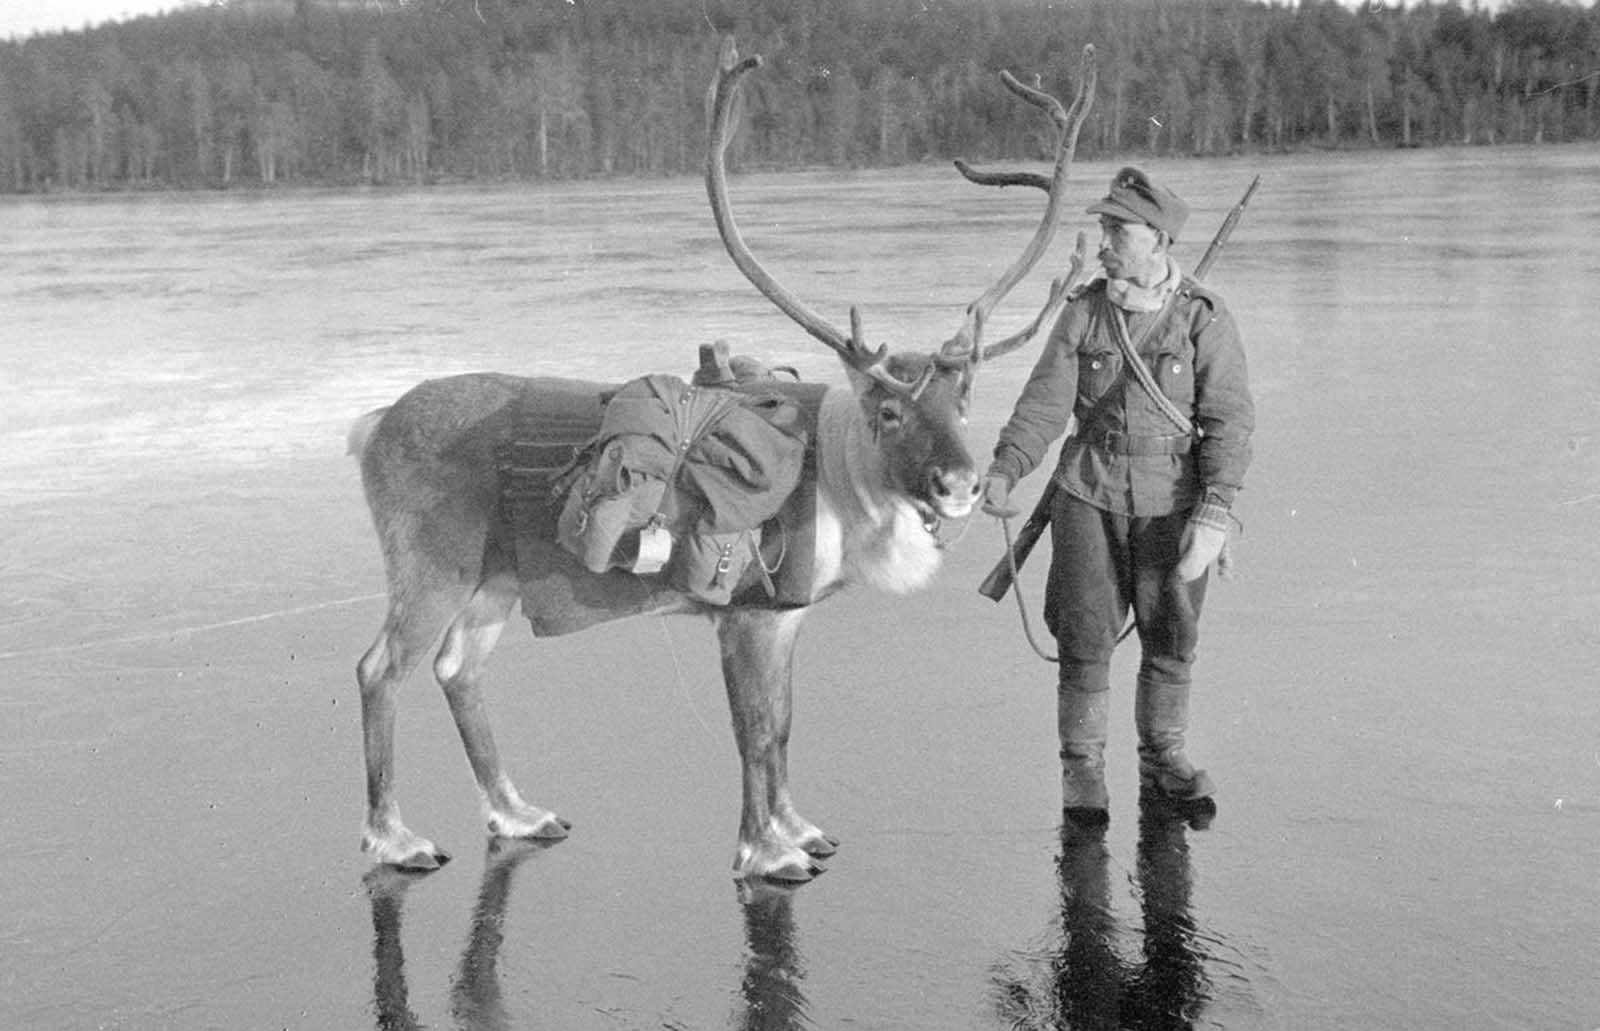 A soldier with a pack Reindeer, on slippery ice, near the tiny village of Nautsi, in northern Lapland, Finland, on October 26, 1941.